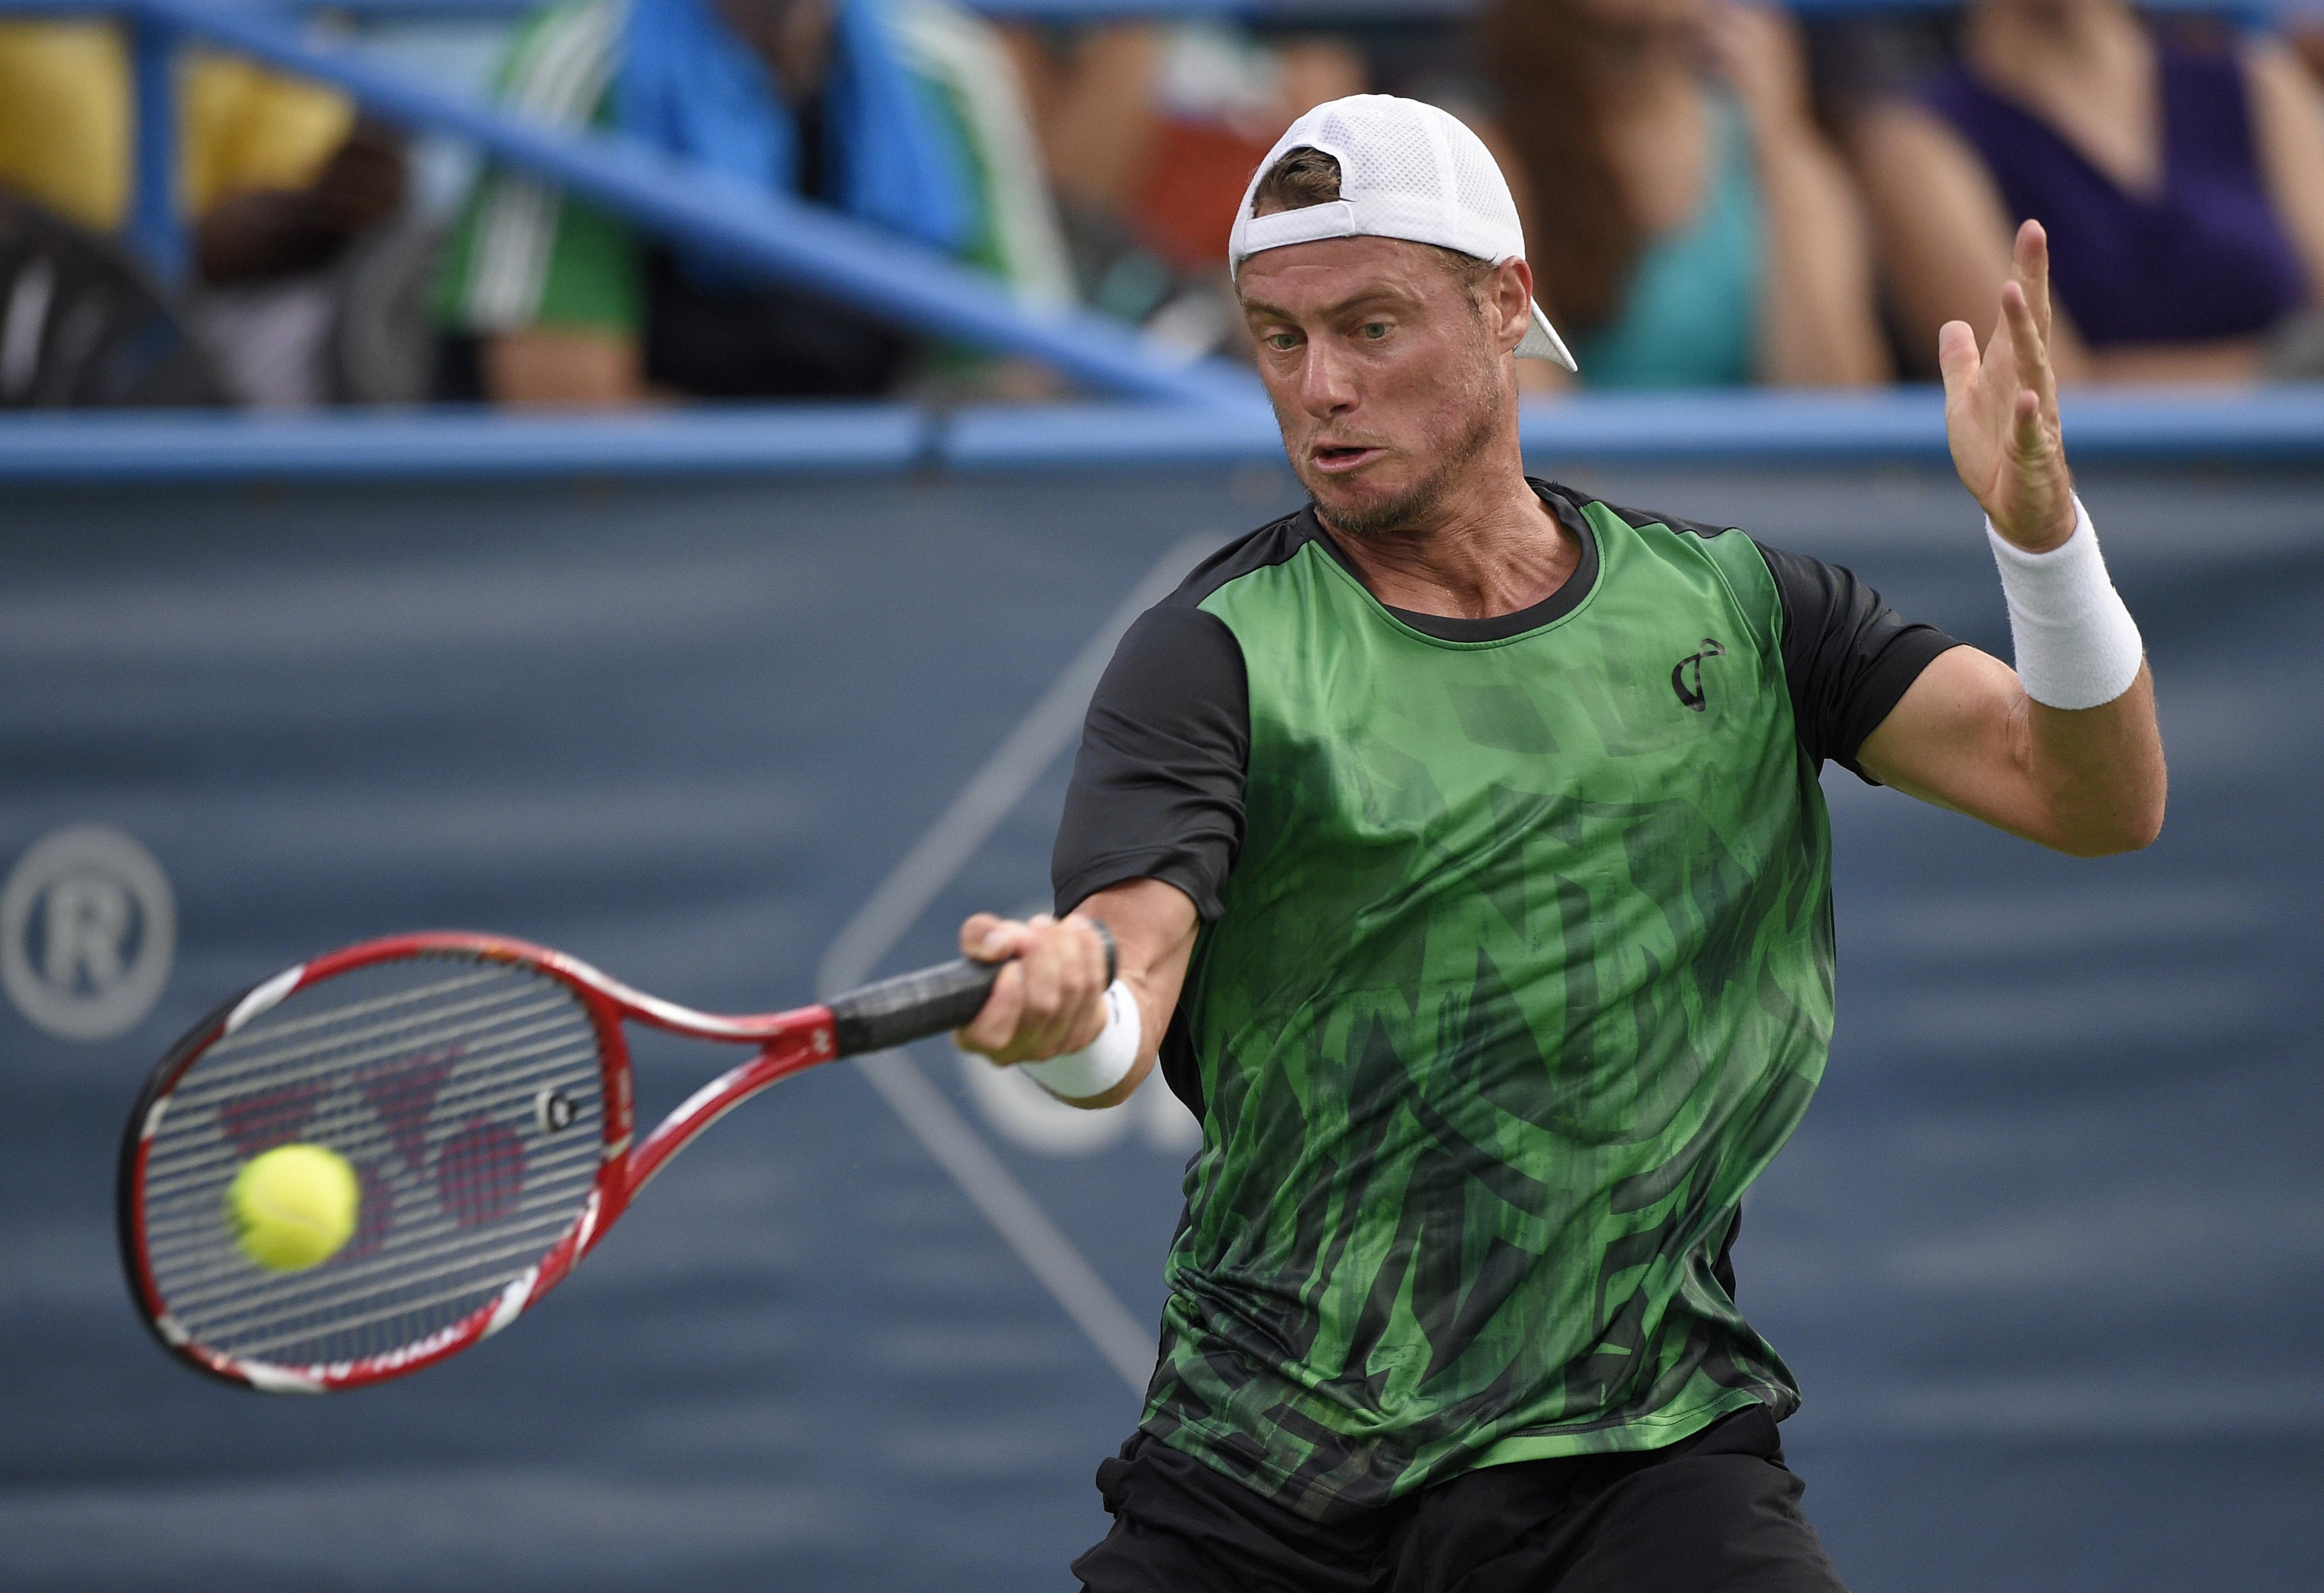 Honored by Citi Open Lleyton Hewitt cherishing final year before